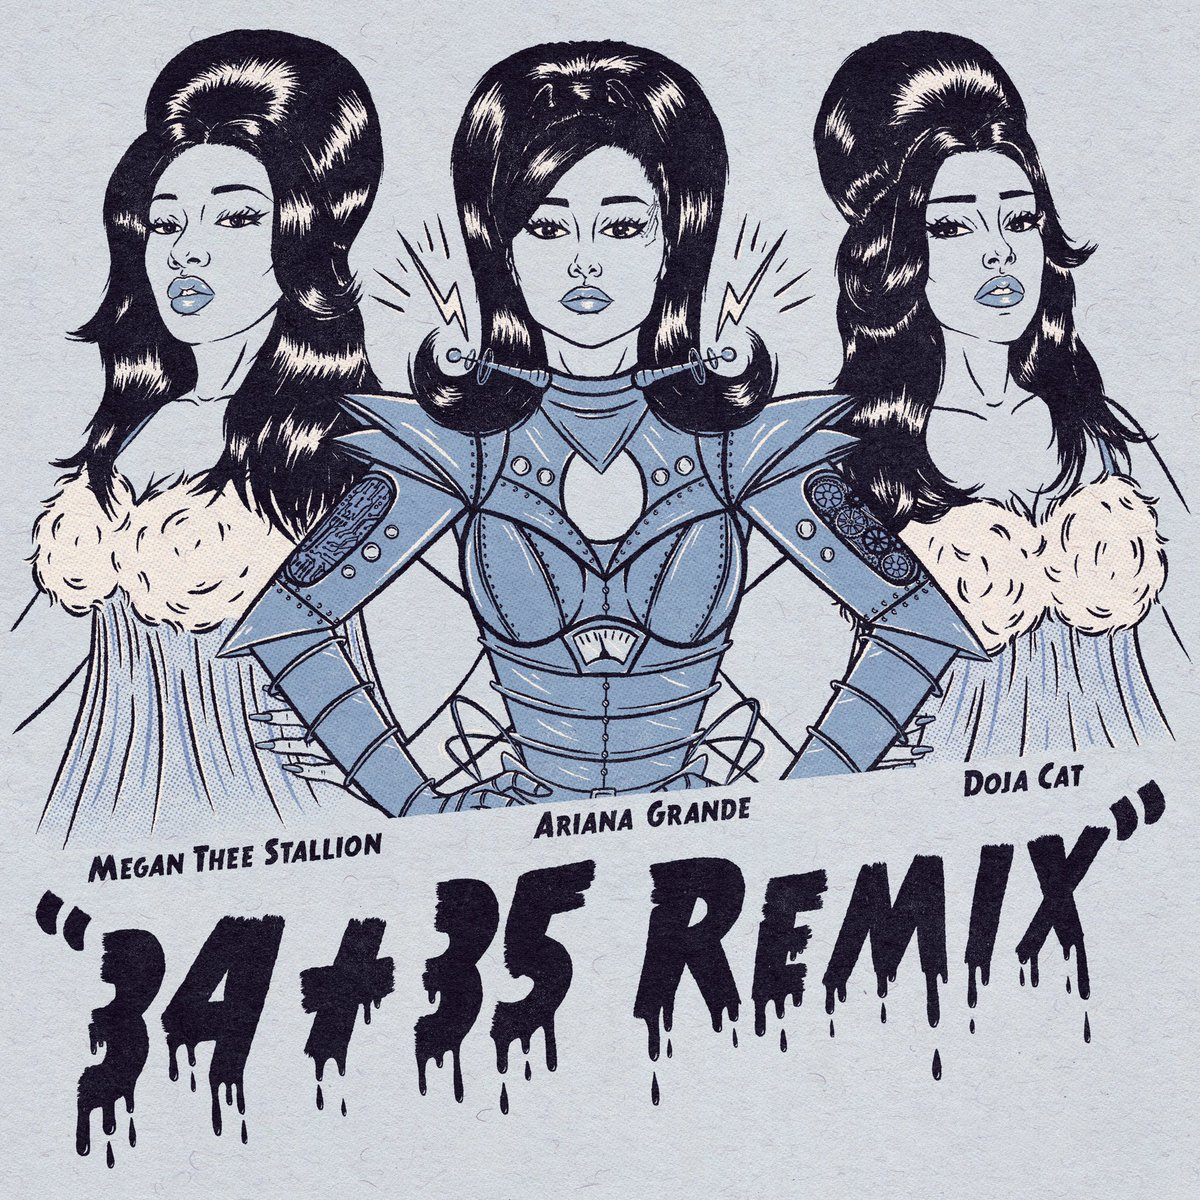 @theestallion's photo on #3435REMIX